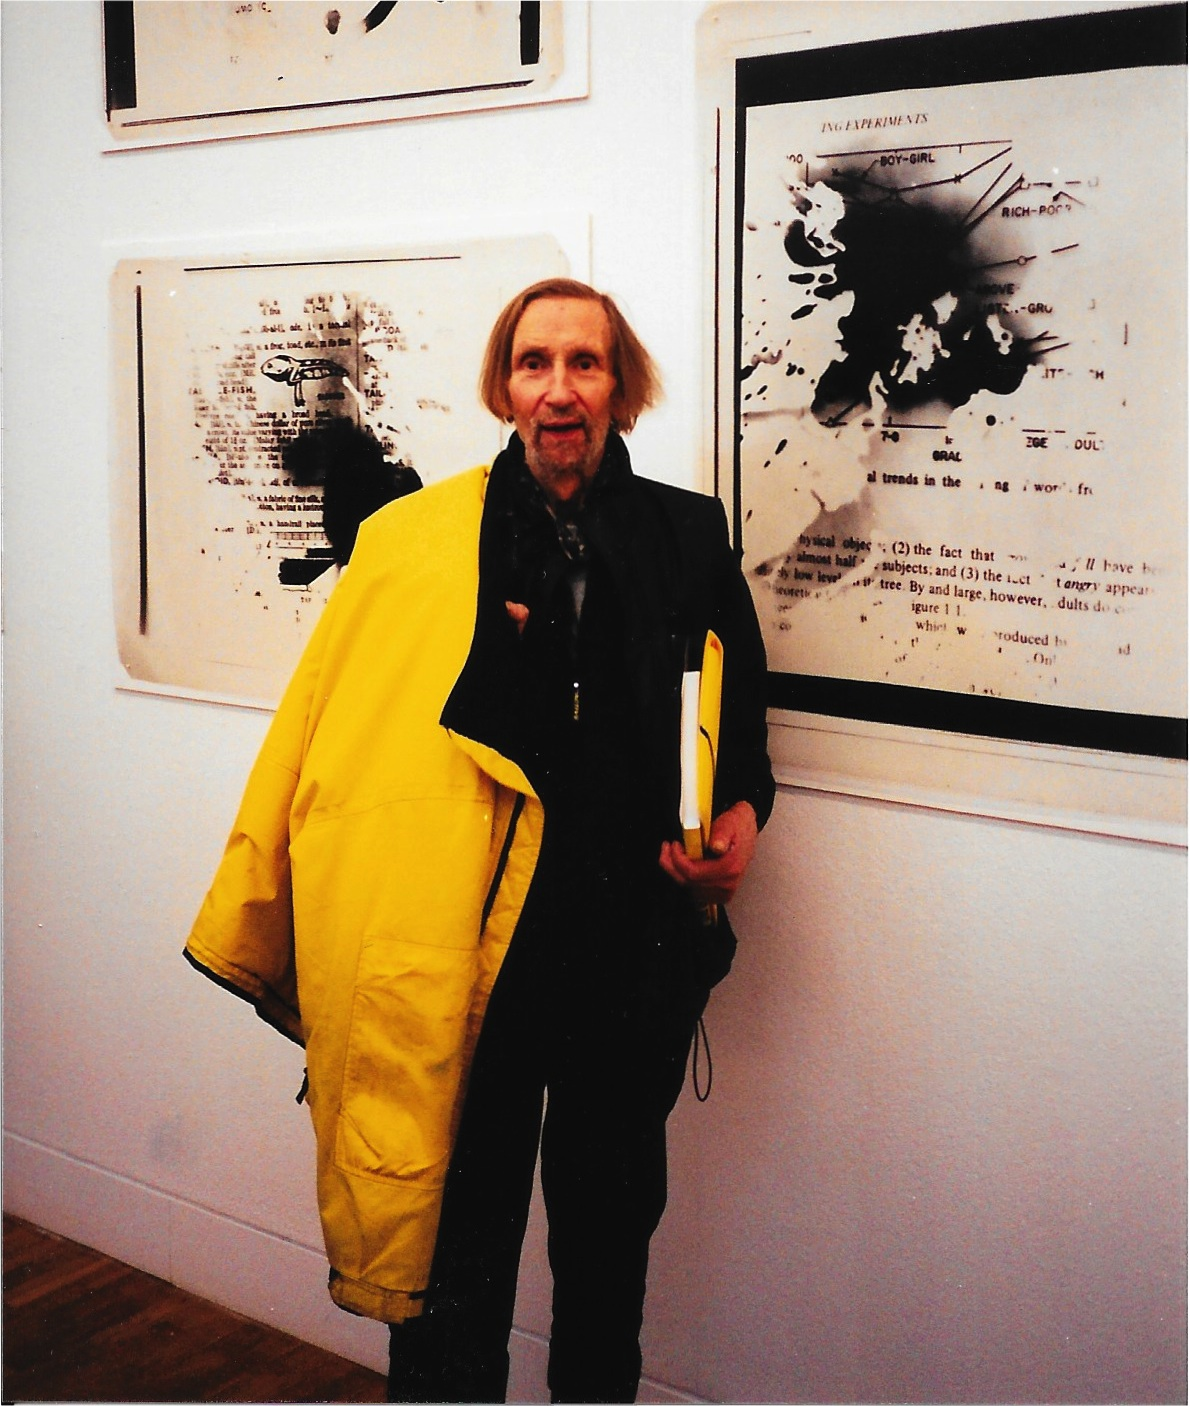 John Latham, photographed by Clive Phillpot at the opening of the exhibition <i>Live in Your Head</i> at the Whitechapel Gallery on 3 February 2000.